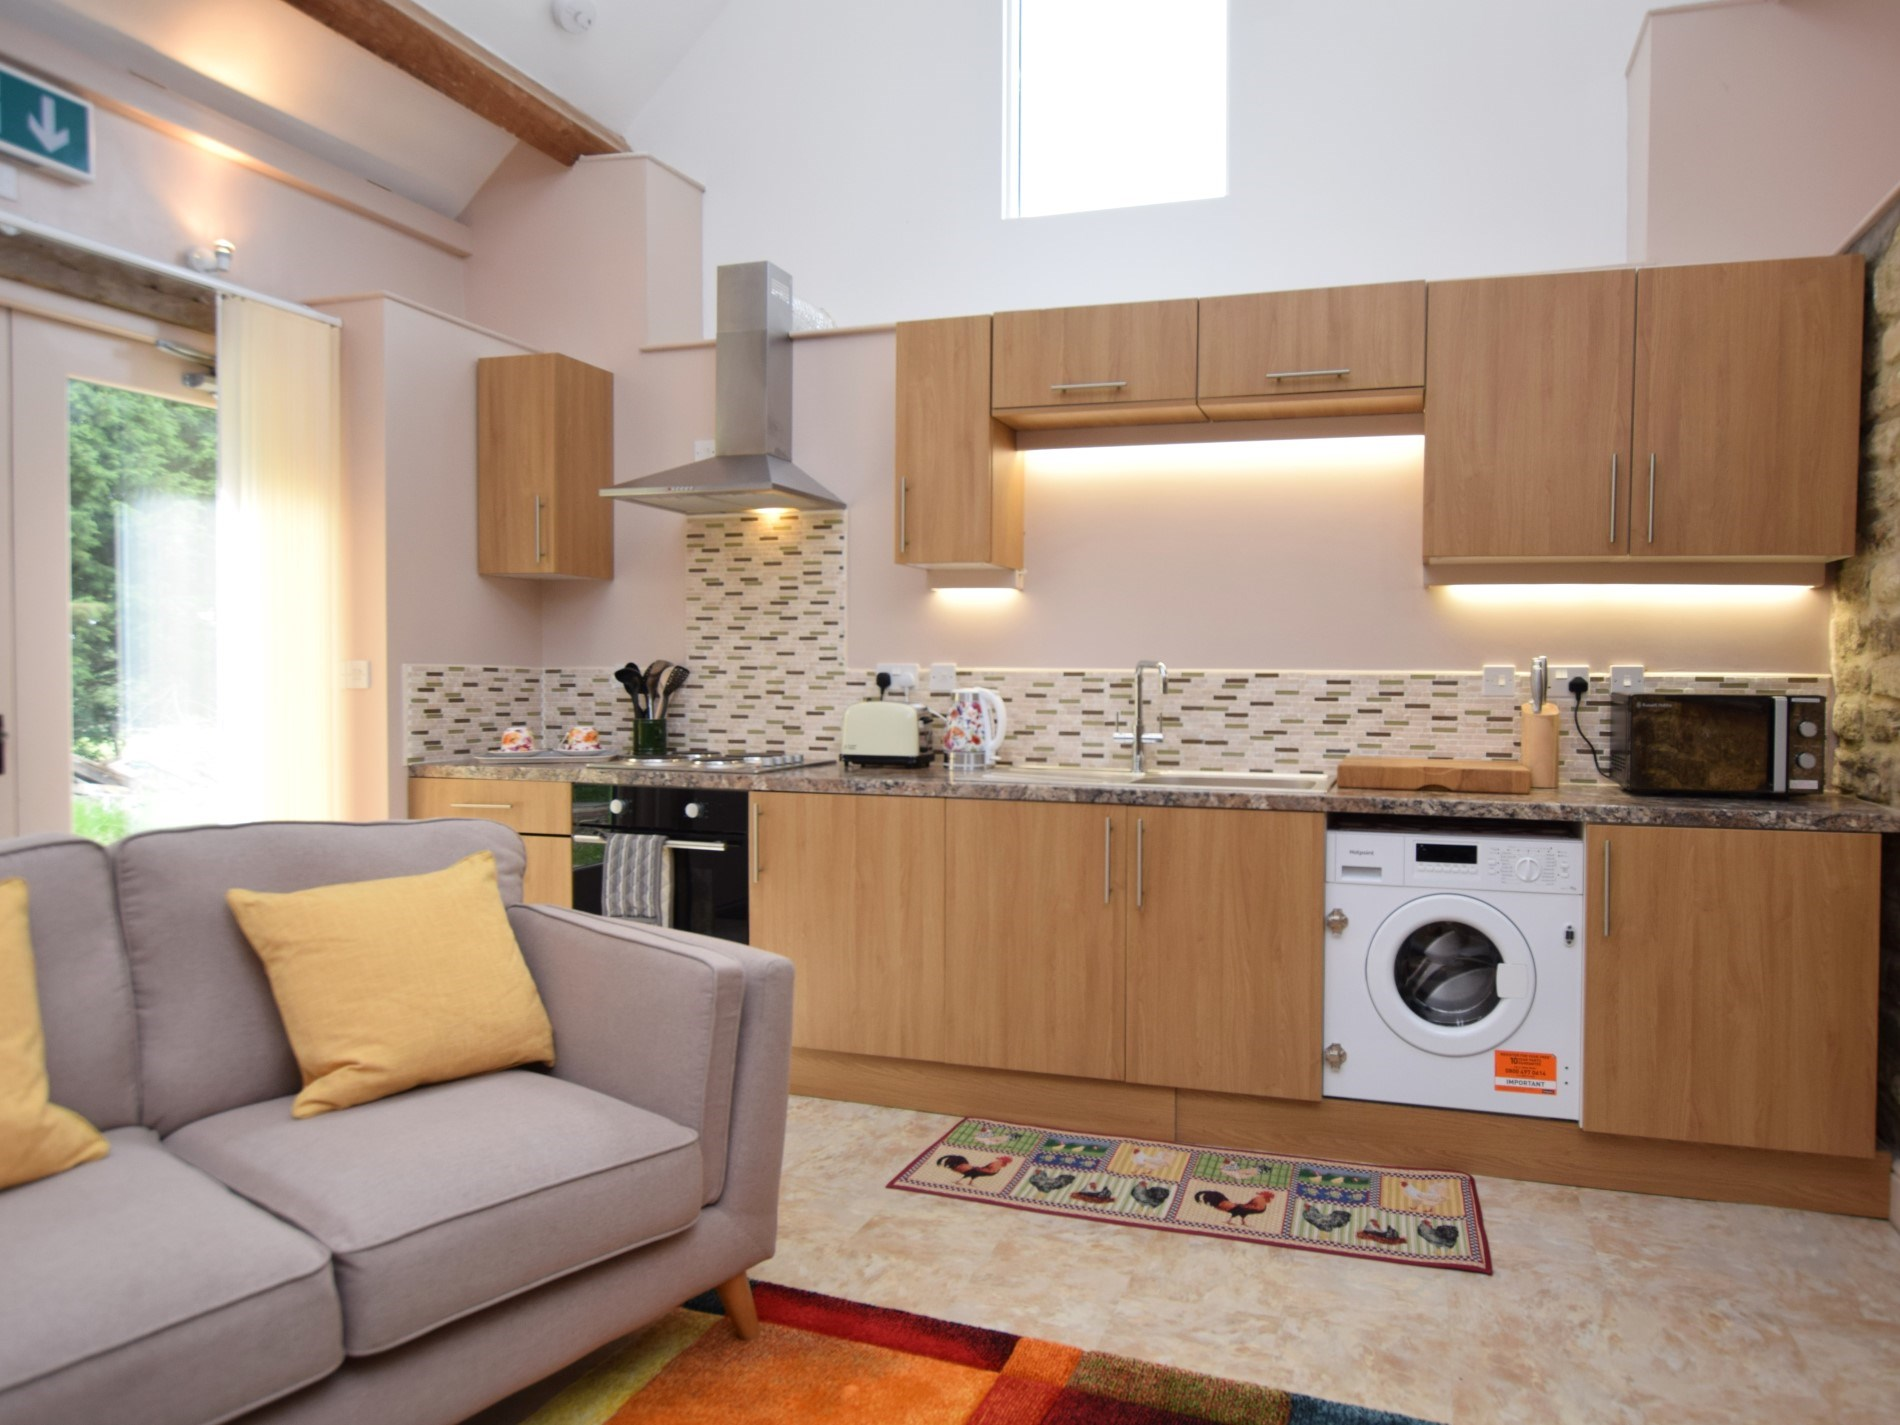 Enjoy cooking in the stylish kitchen area